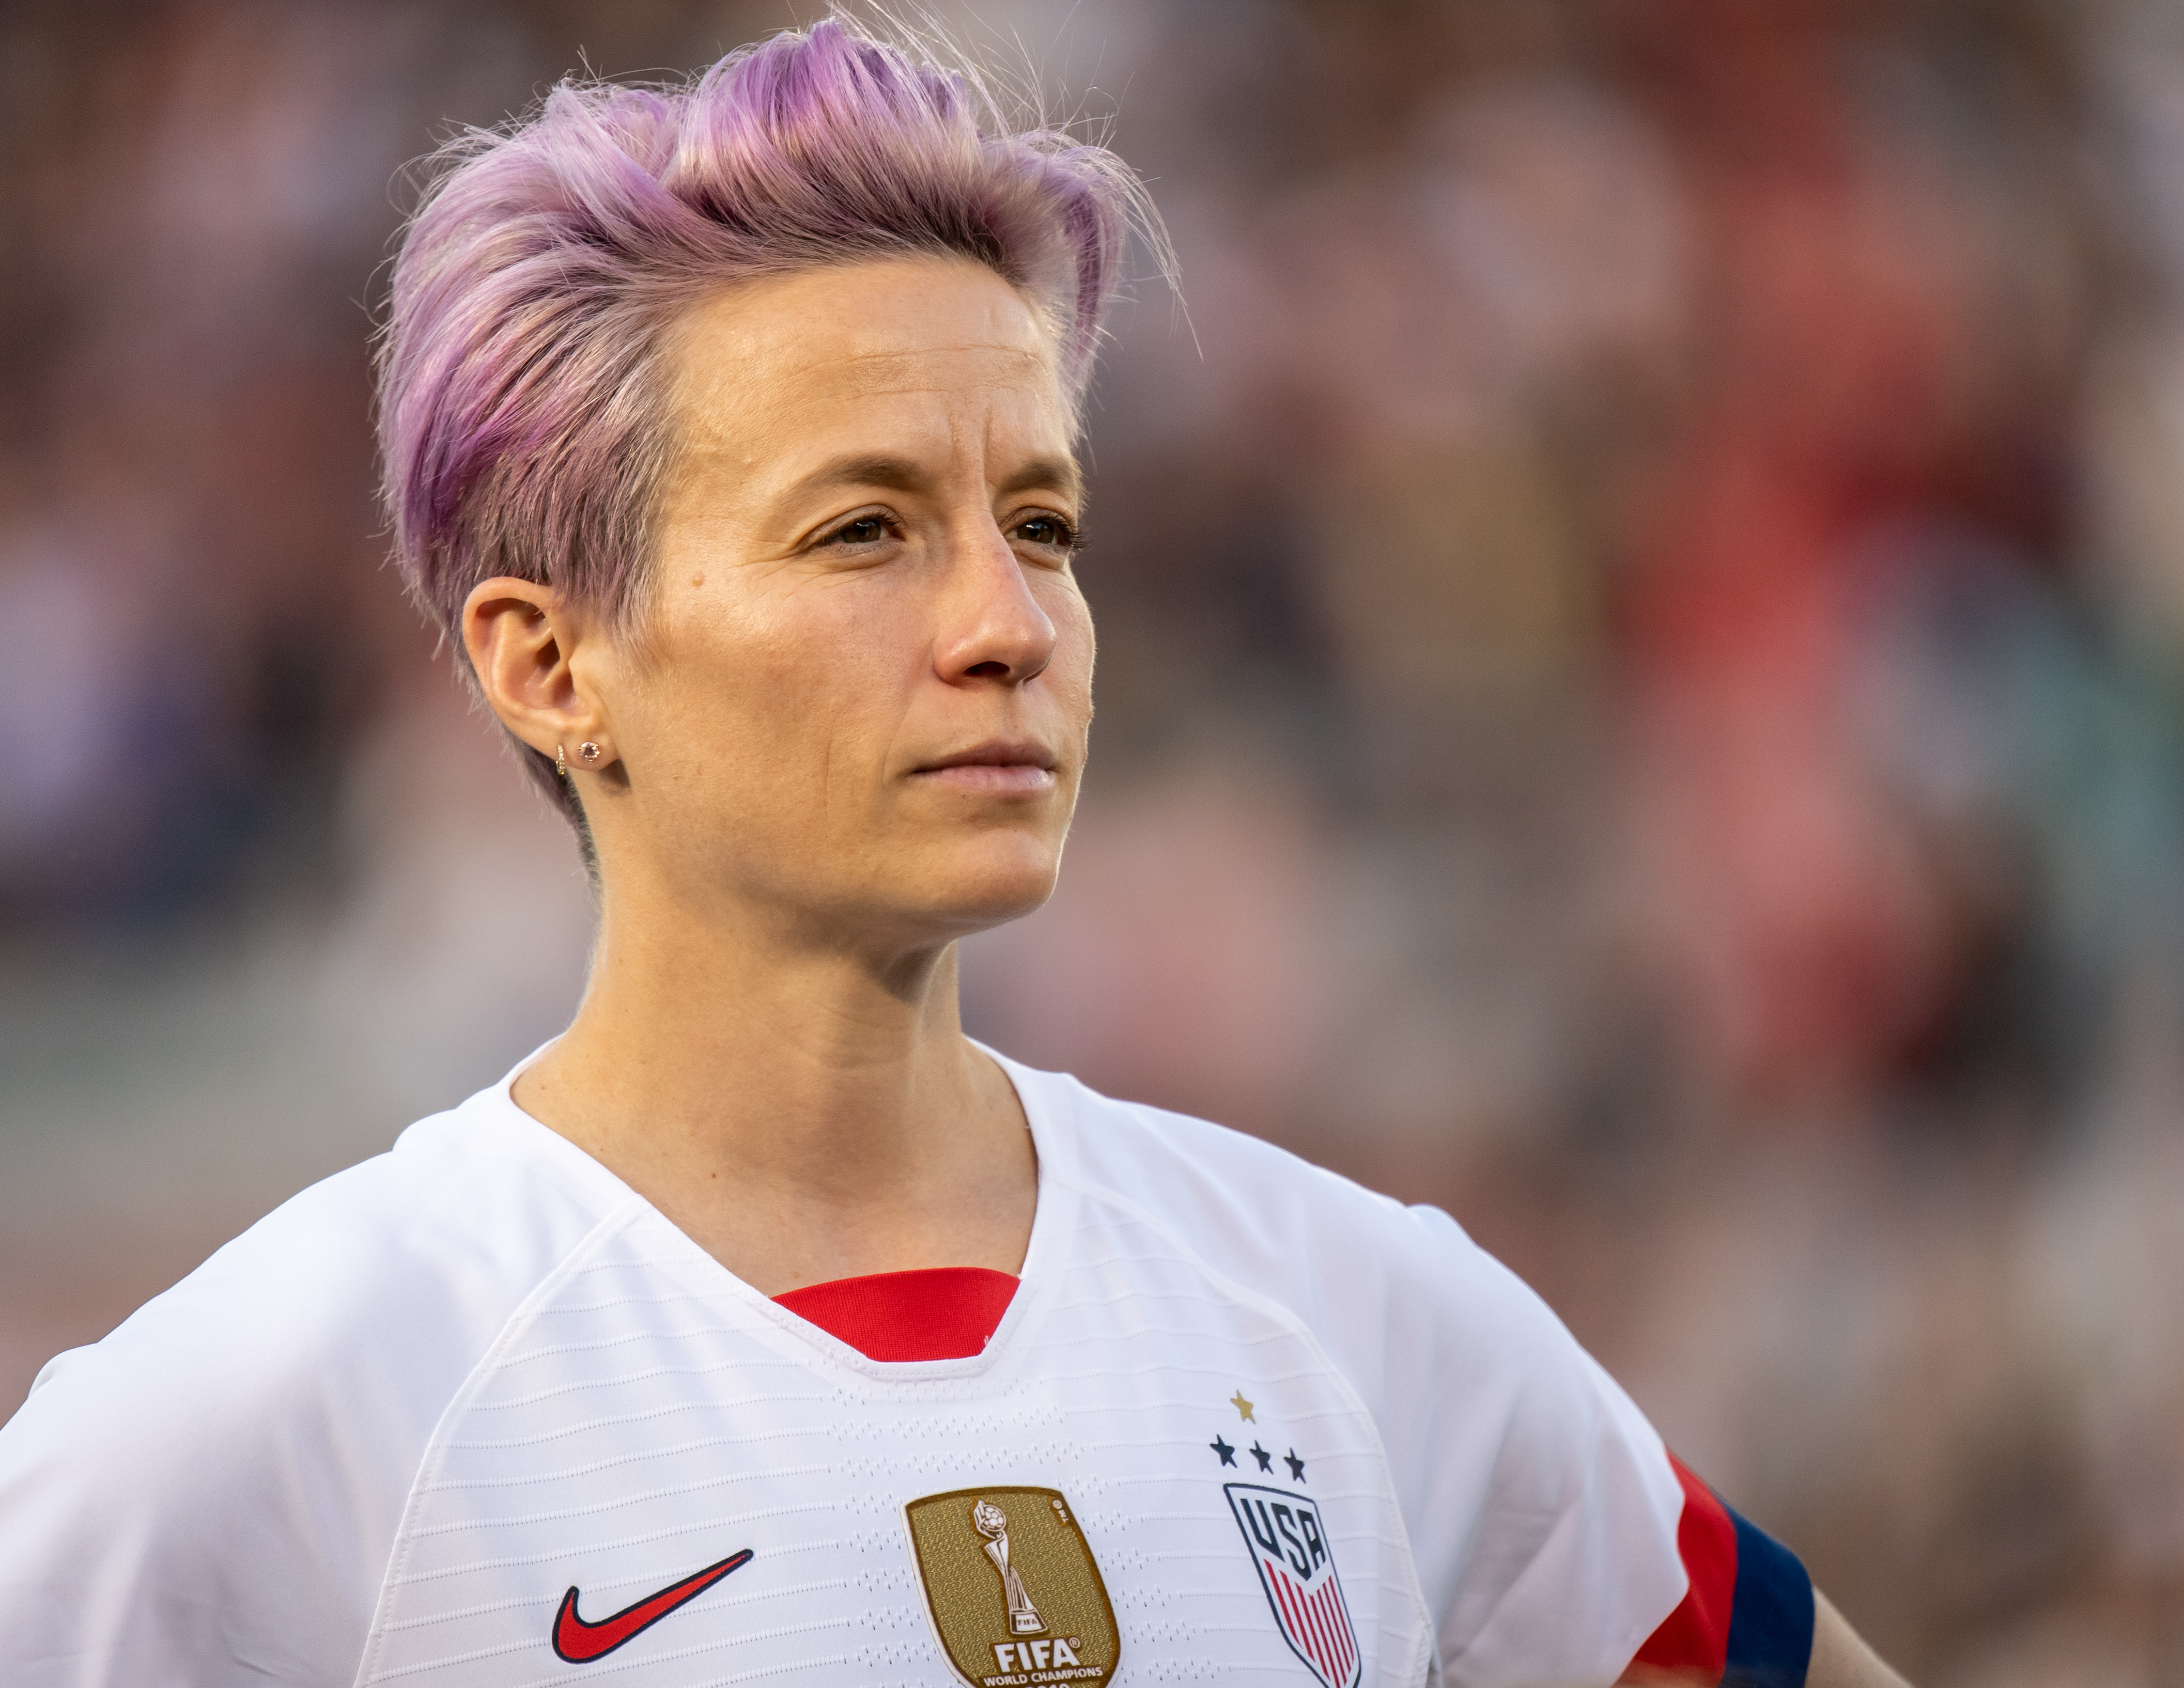 Megan Rapinoe says her dad 'probably' voted for Trump